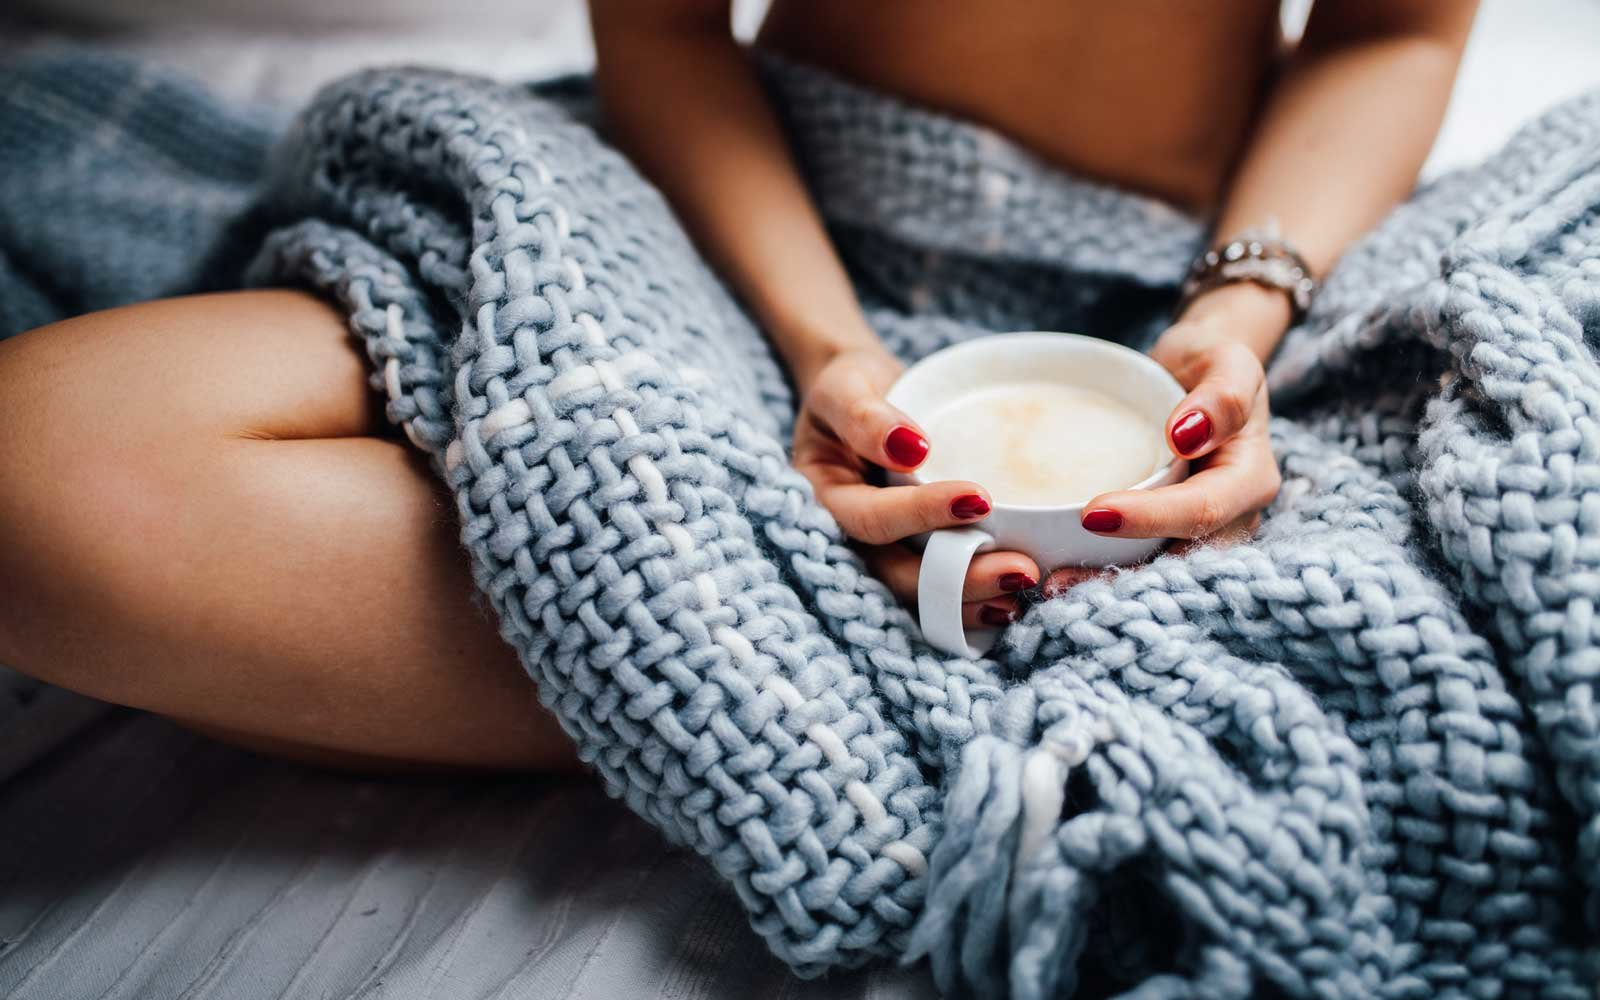 The New Hygge